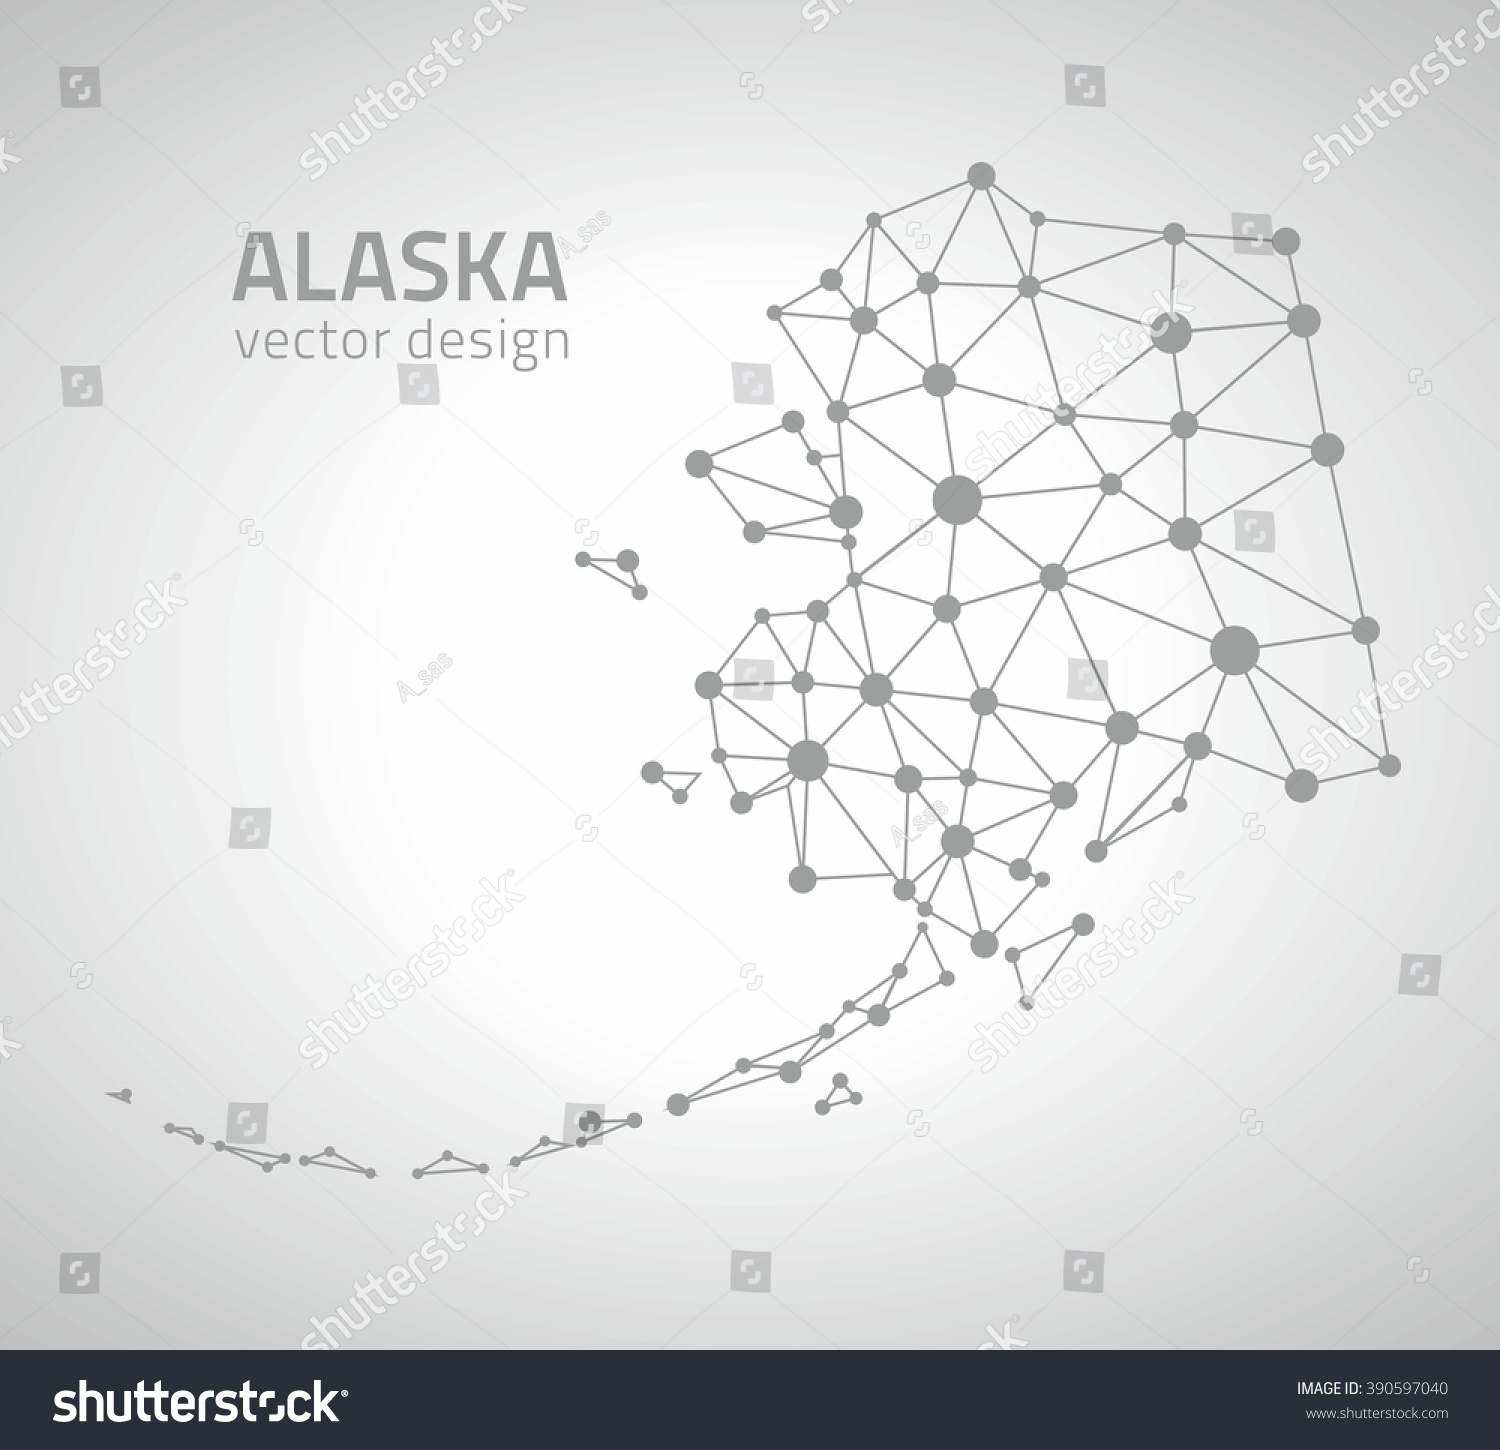 The United States Of America From Alaskas Point Of View The - Alaska america map